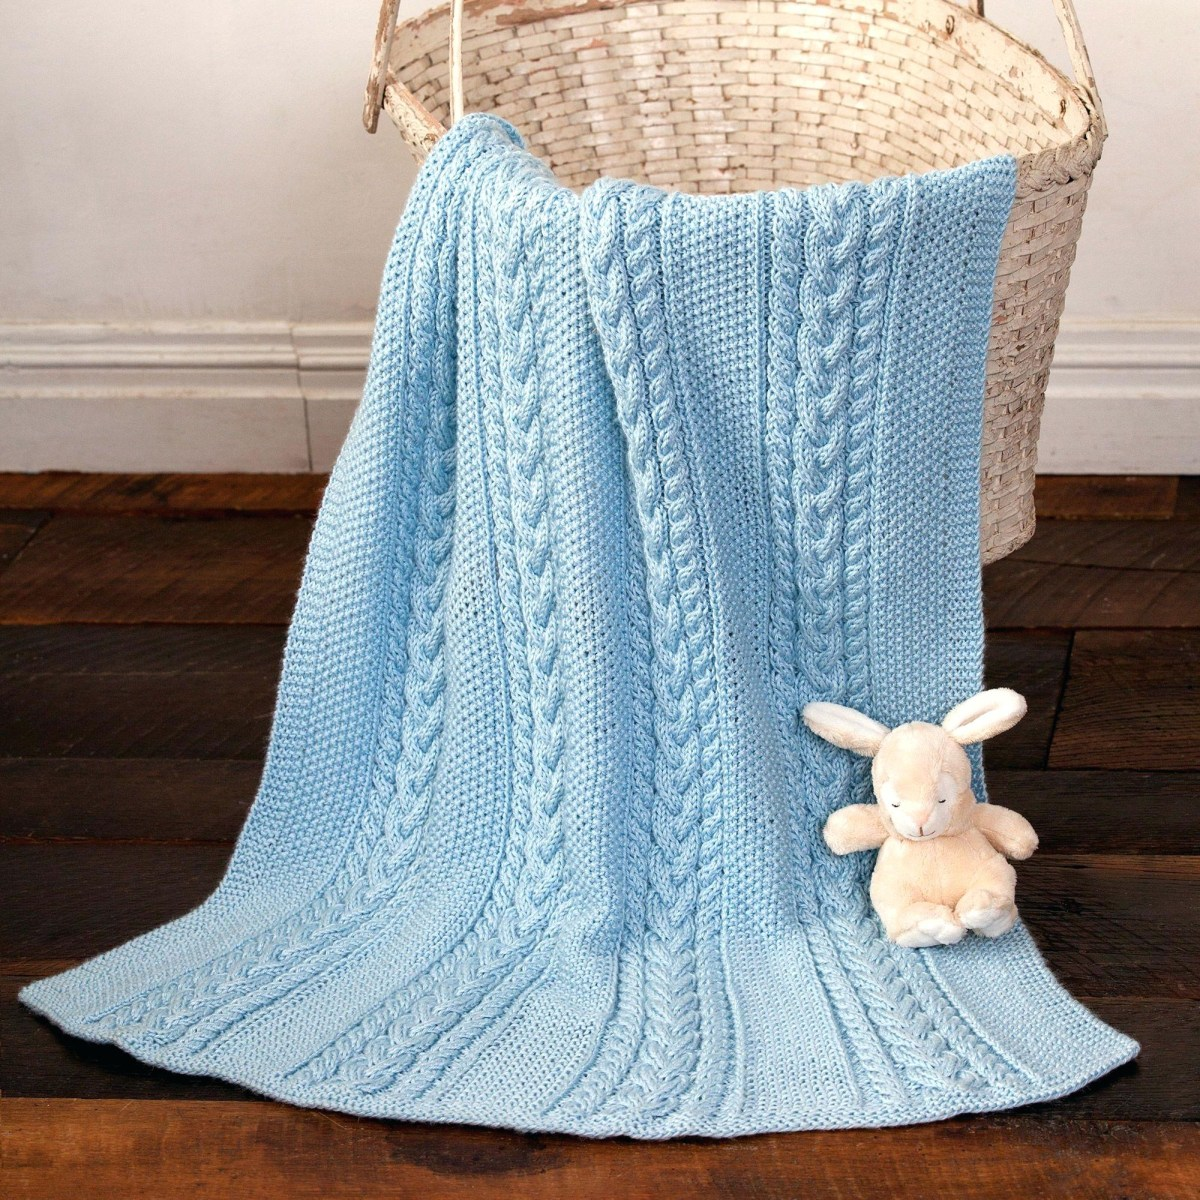 Basic & Standard Patterns for Boy Blanket Crochet Blue Ba Blanket Ocean Blue Ba Blanket Blue And Gray Crochet Ba